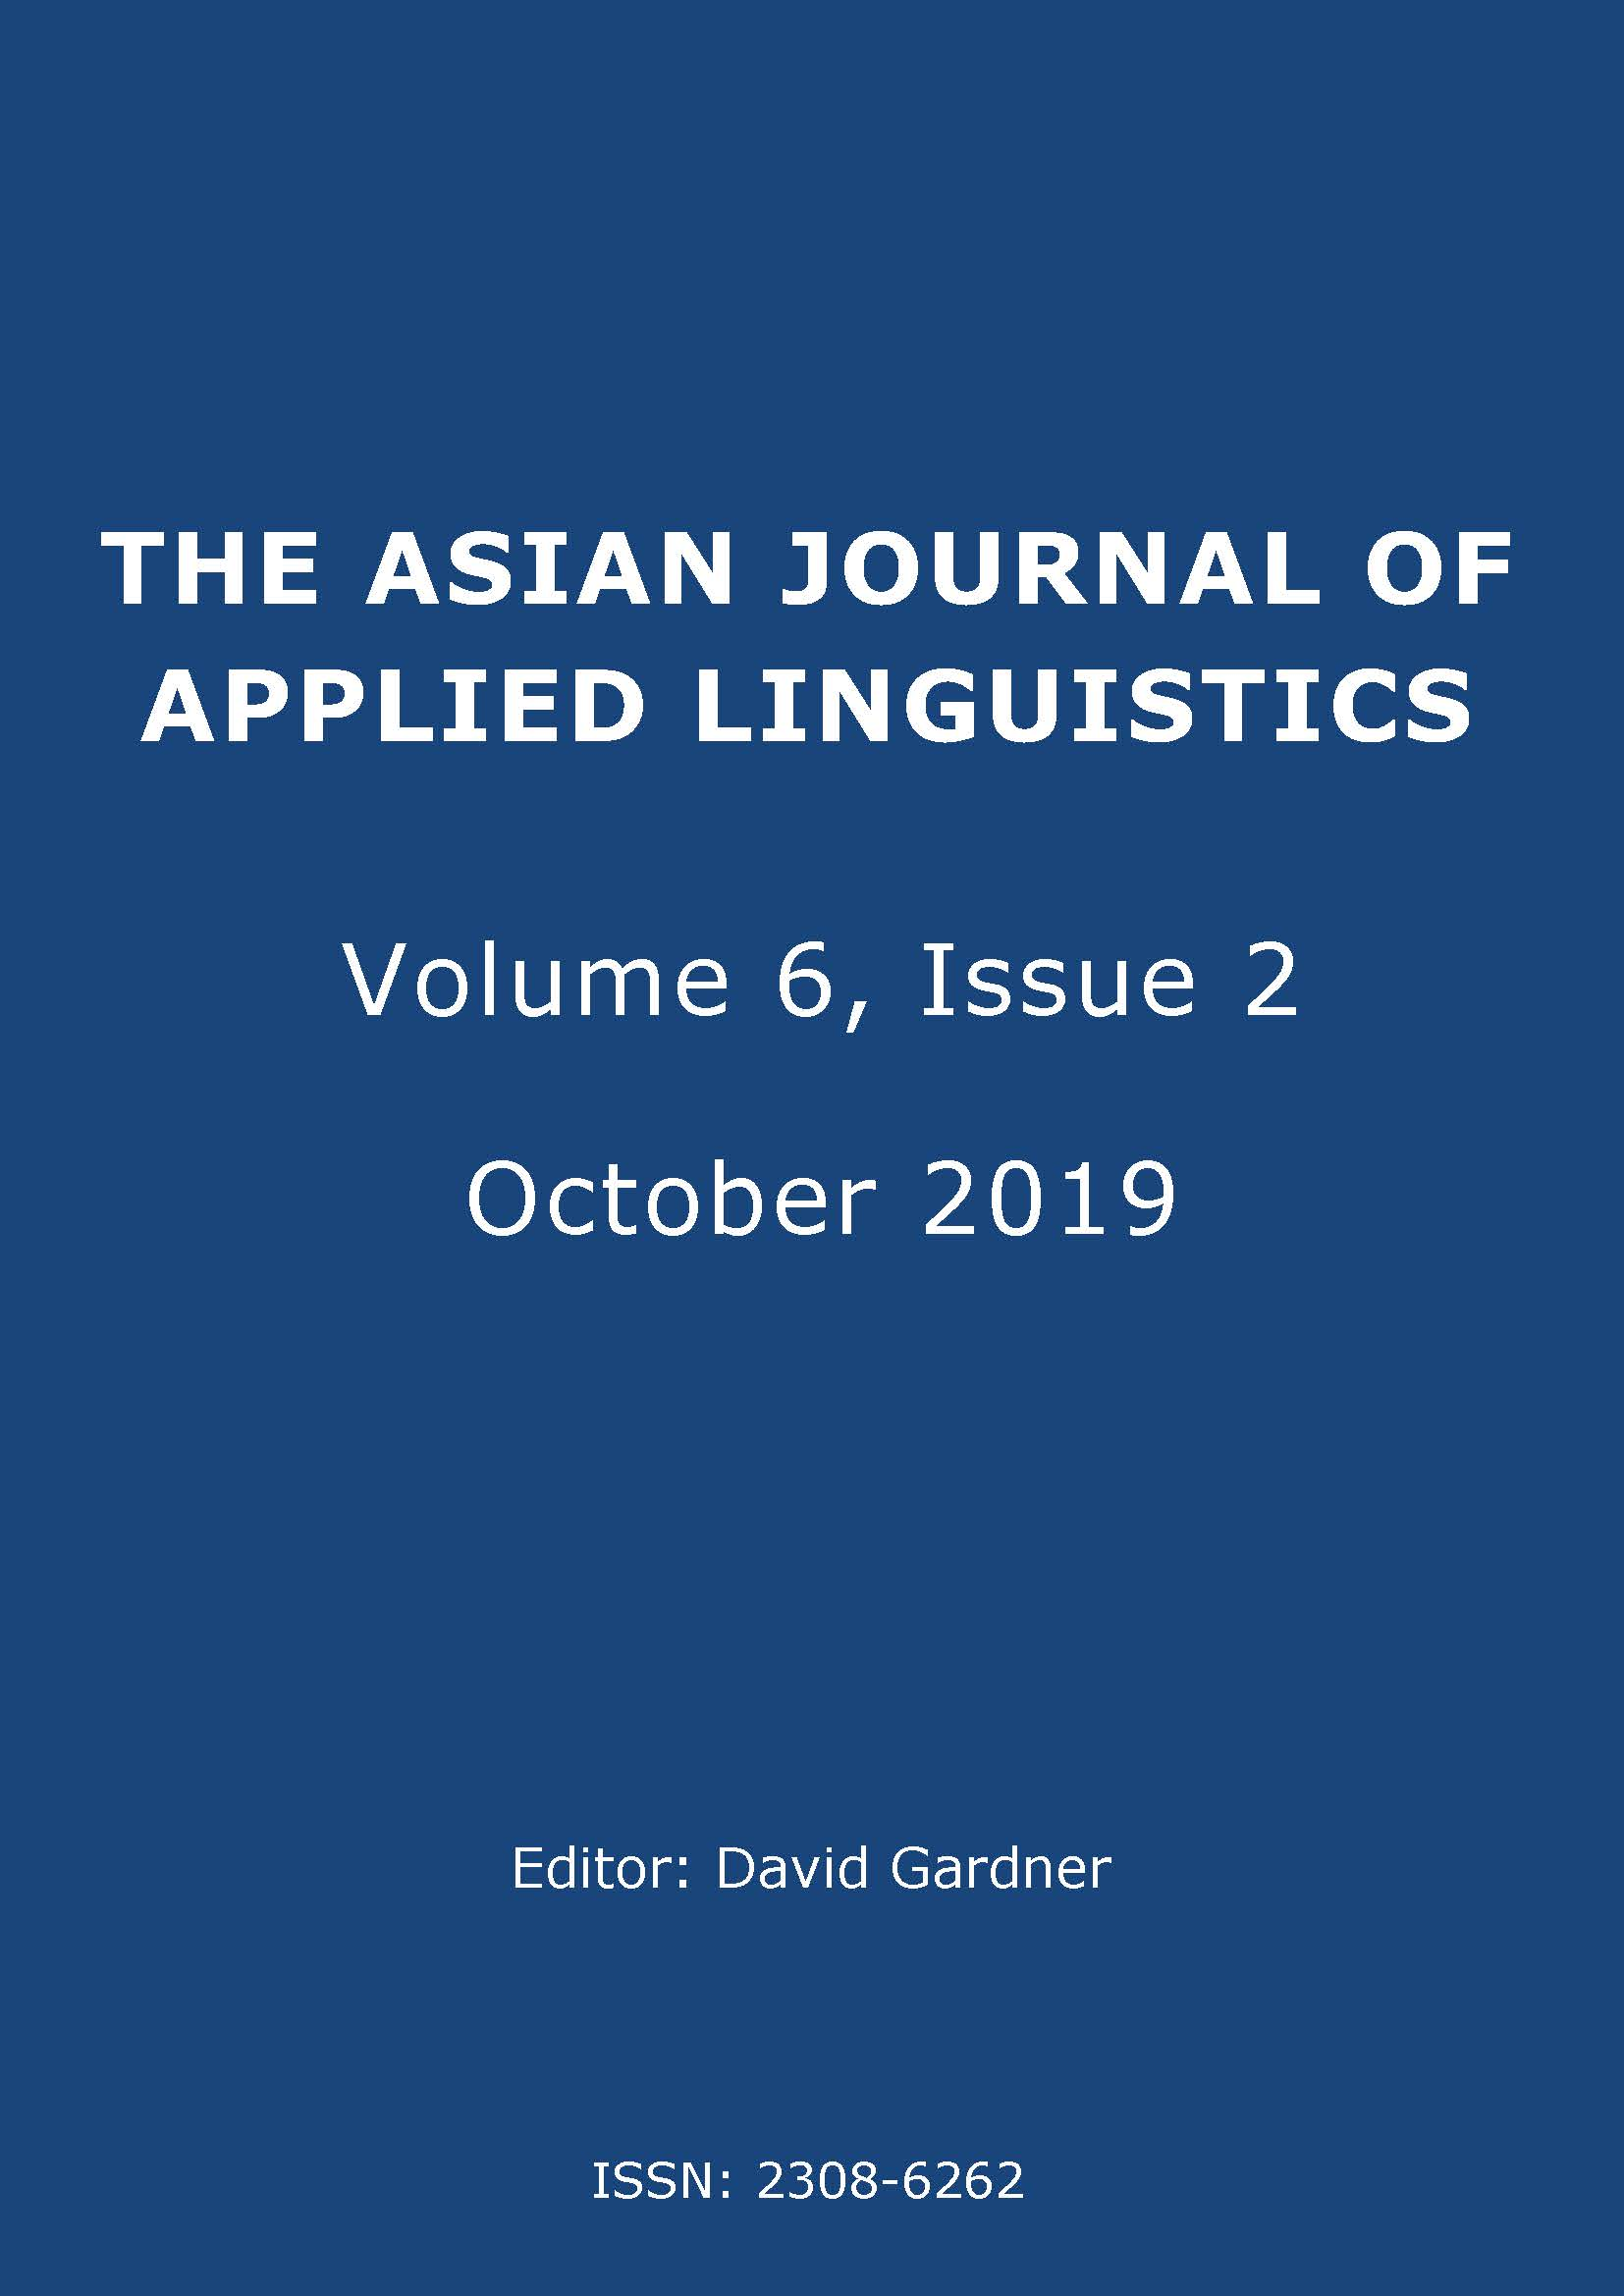 The Asian Journal of Applied Linguistics. Volume 6, Issue 2. October 2019.